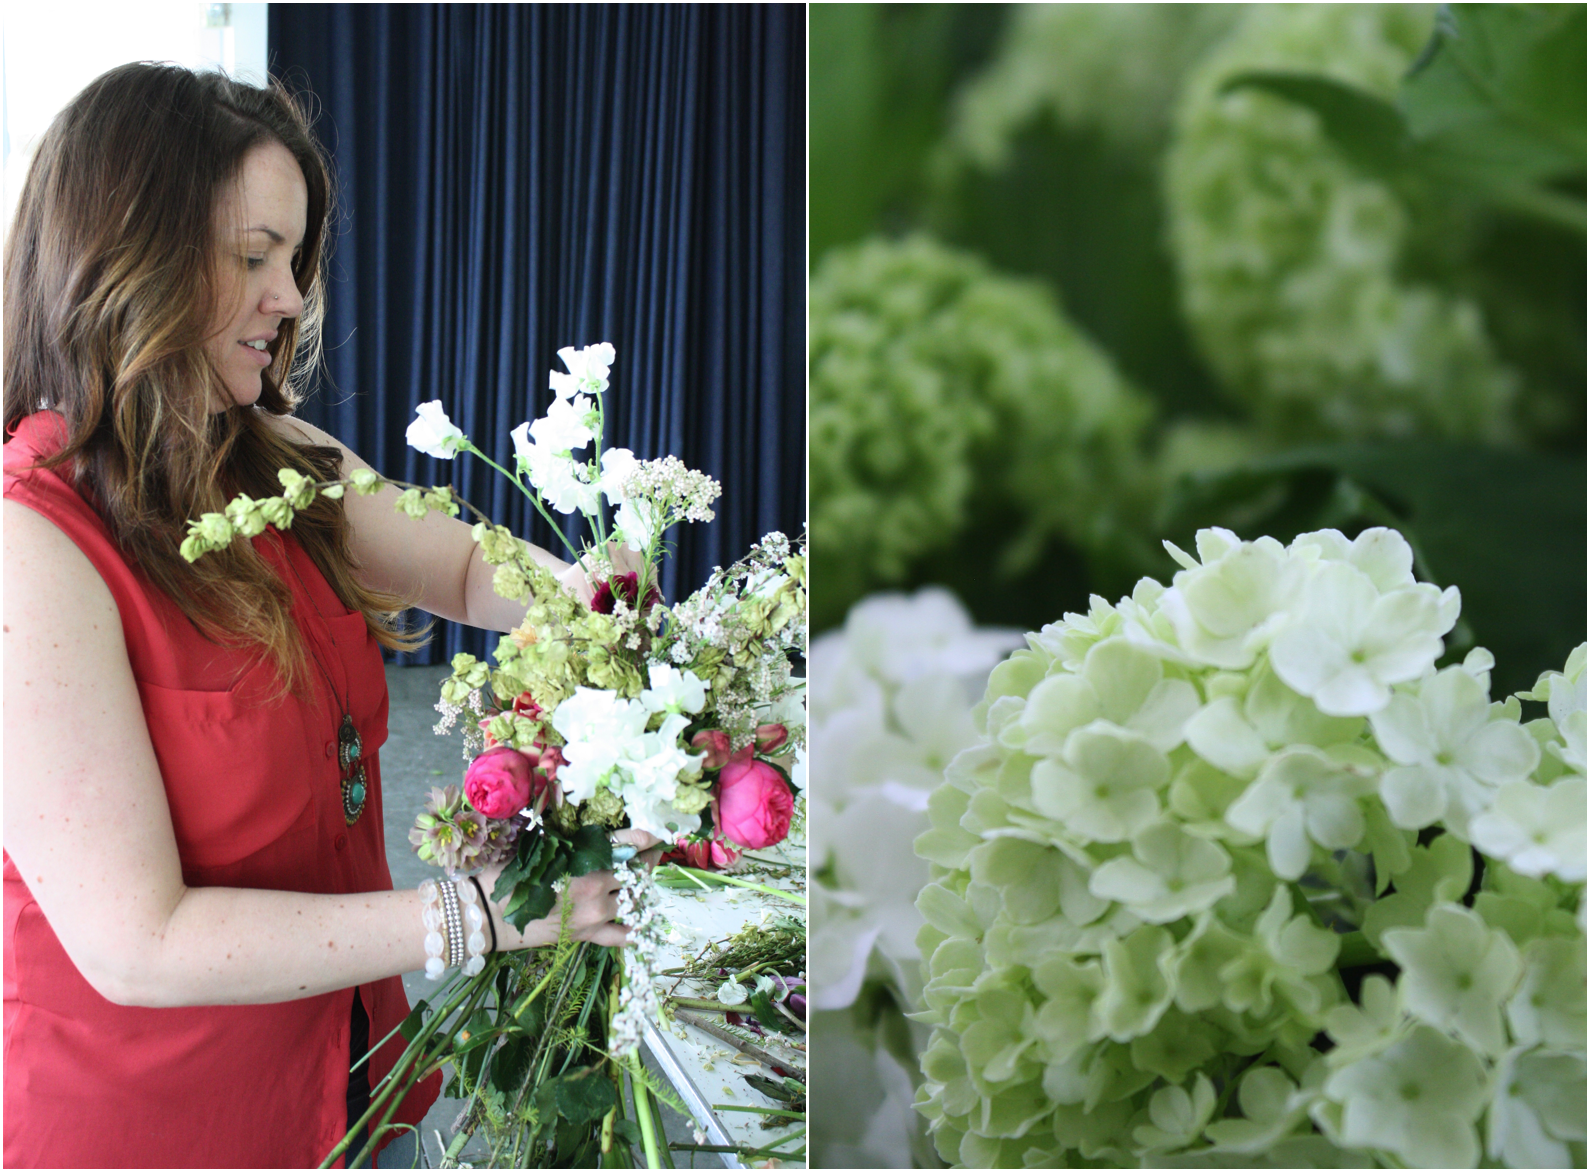 Flowerwild Workshops 2013 - Abany Bauer Flowers & Styling.png